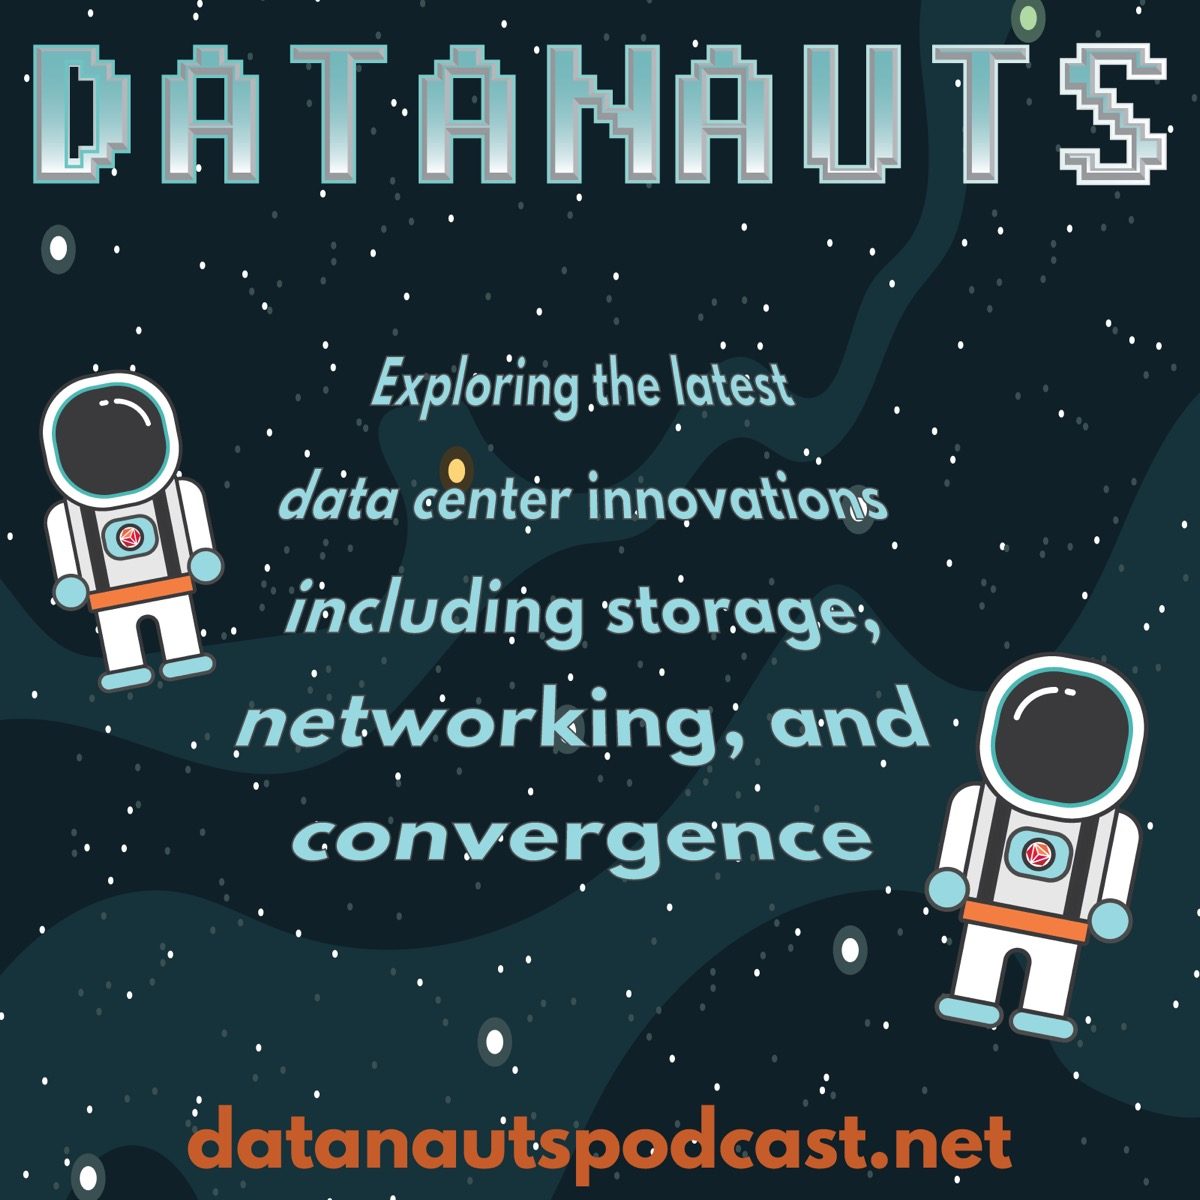 Datanauts 163: Hybrid Cloud DNS Design With AWS Route 53